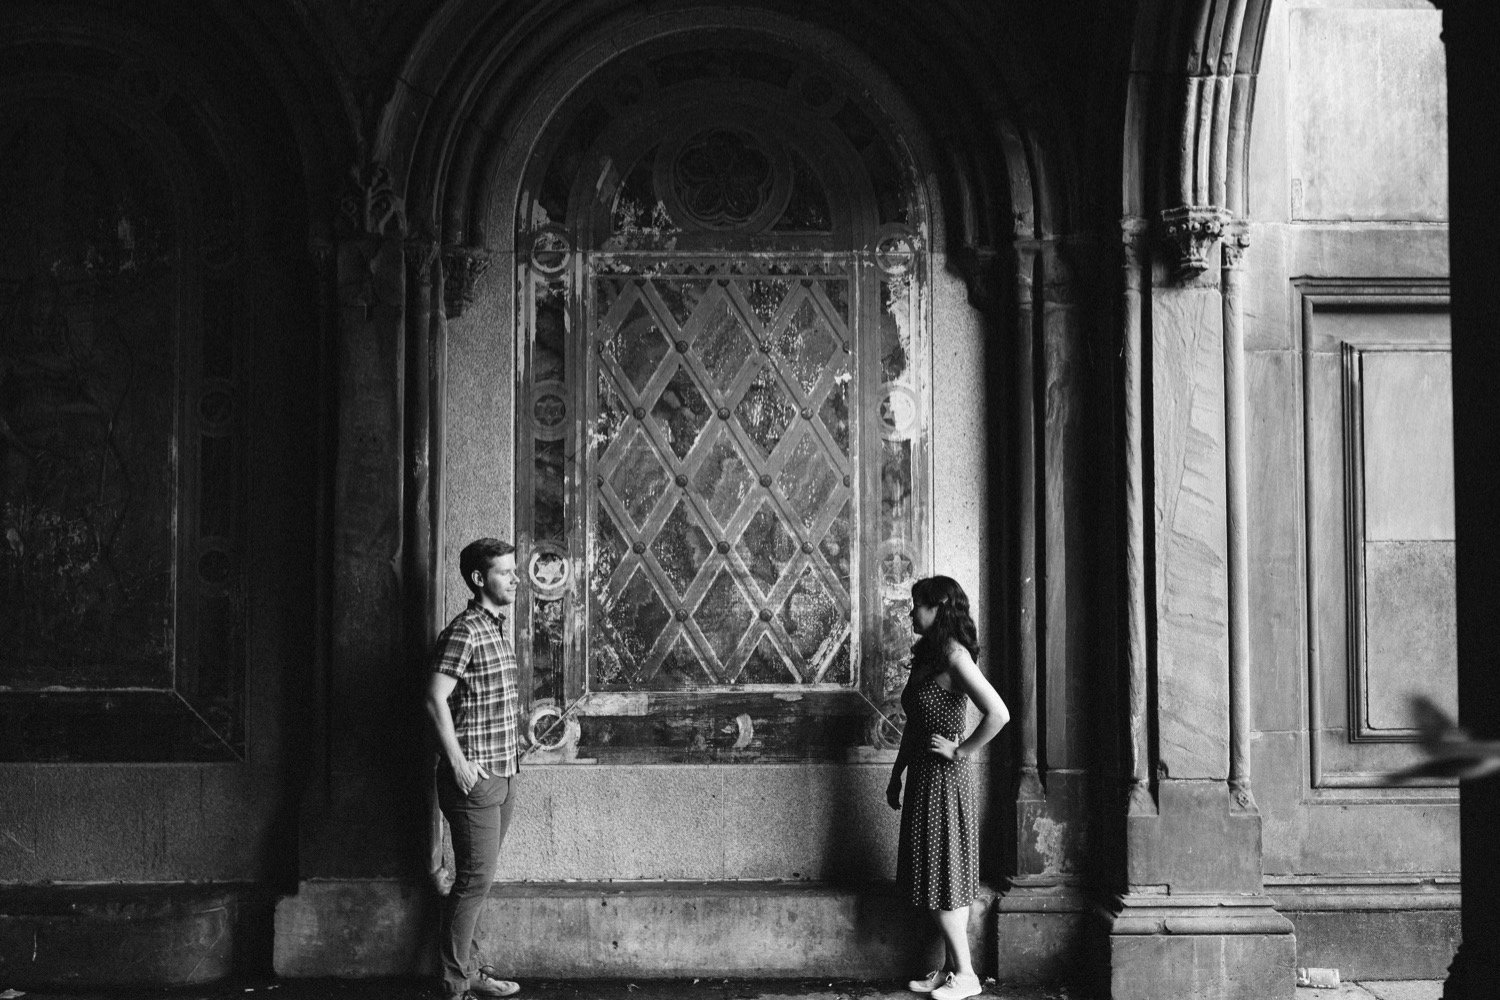 black and white photo of the couple standing across from each other inside bethesda terrace, a bird swoops by in the photo.